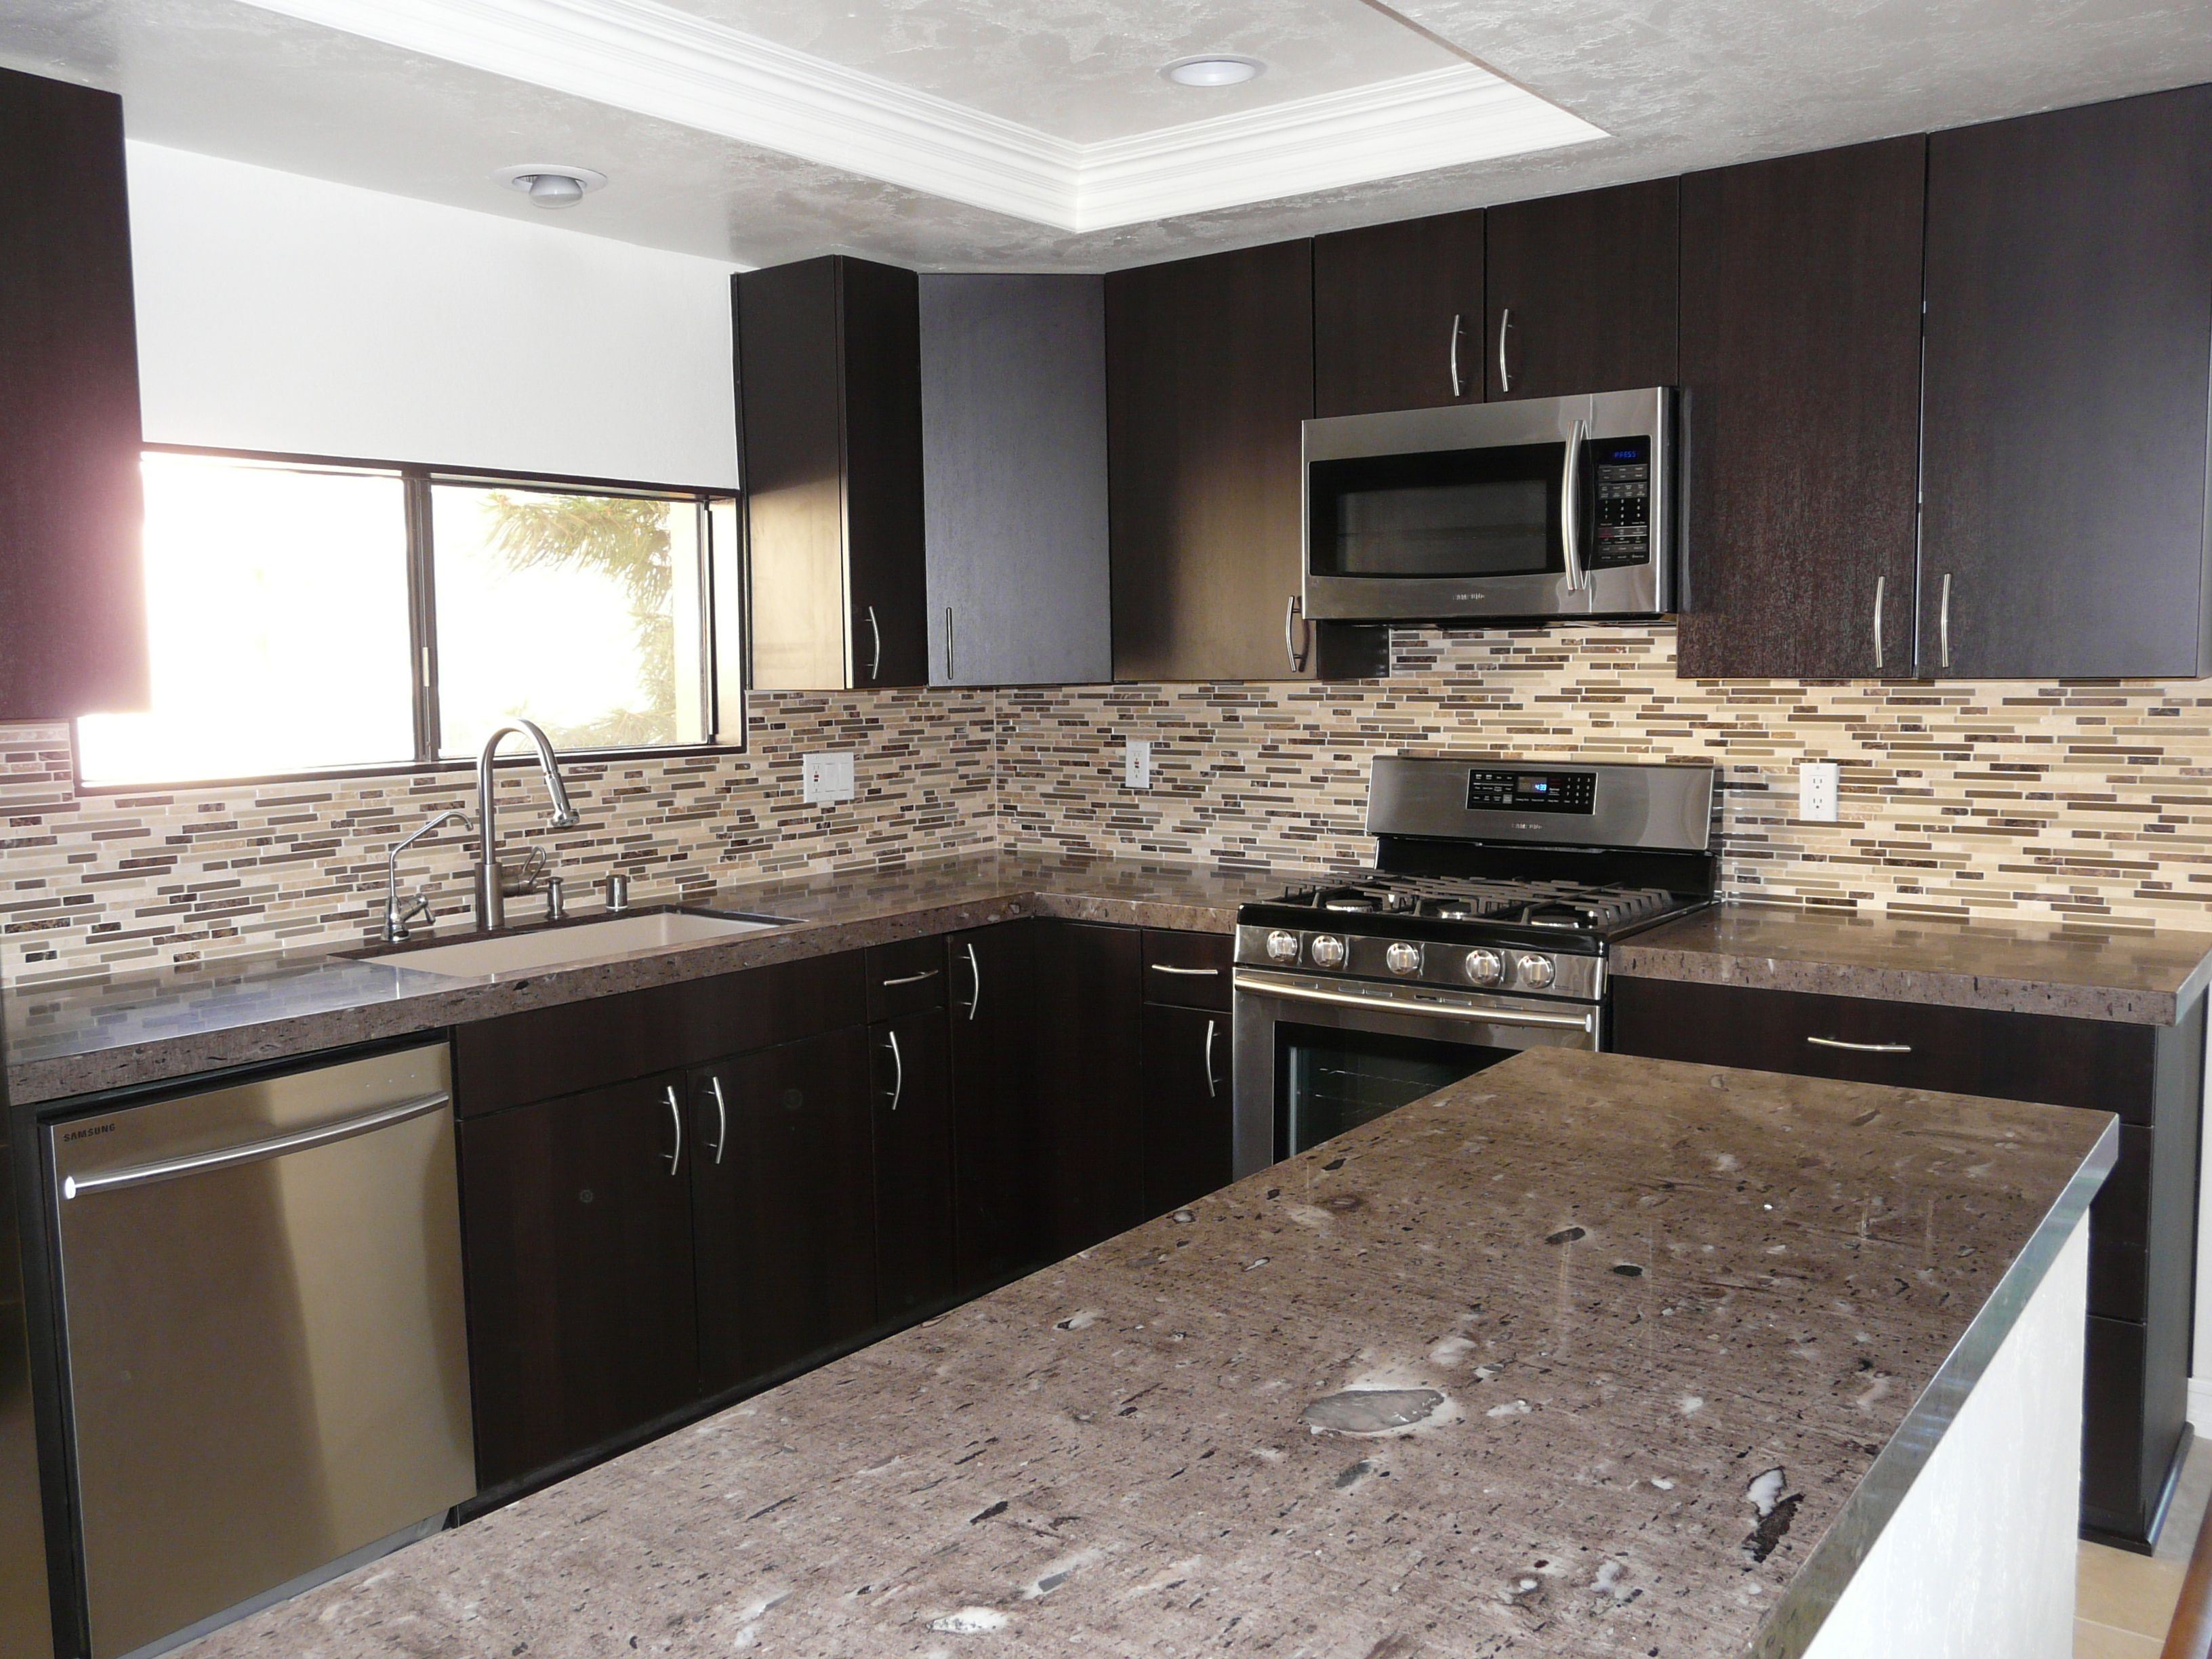 I Absolutely Love How The Countertops Turned Out   Cygnus Granite With An  Eased/square Edge. Backsplash Is Natural Stone And Glass Tiles, Cabinets  Are ...